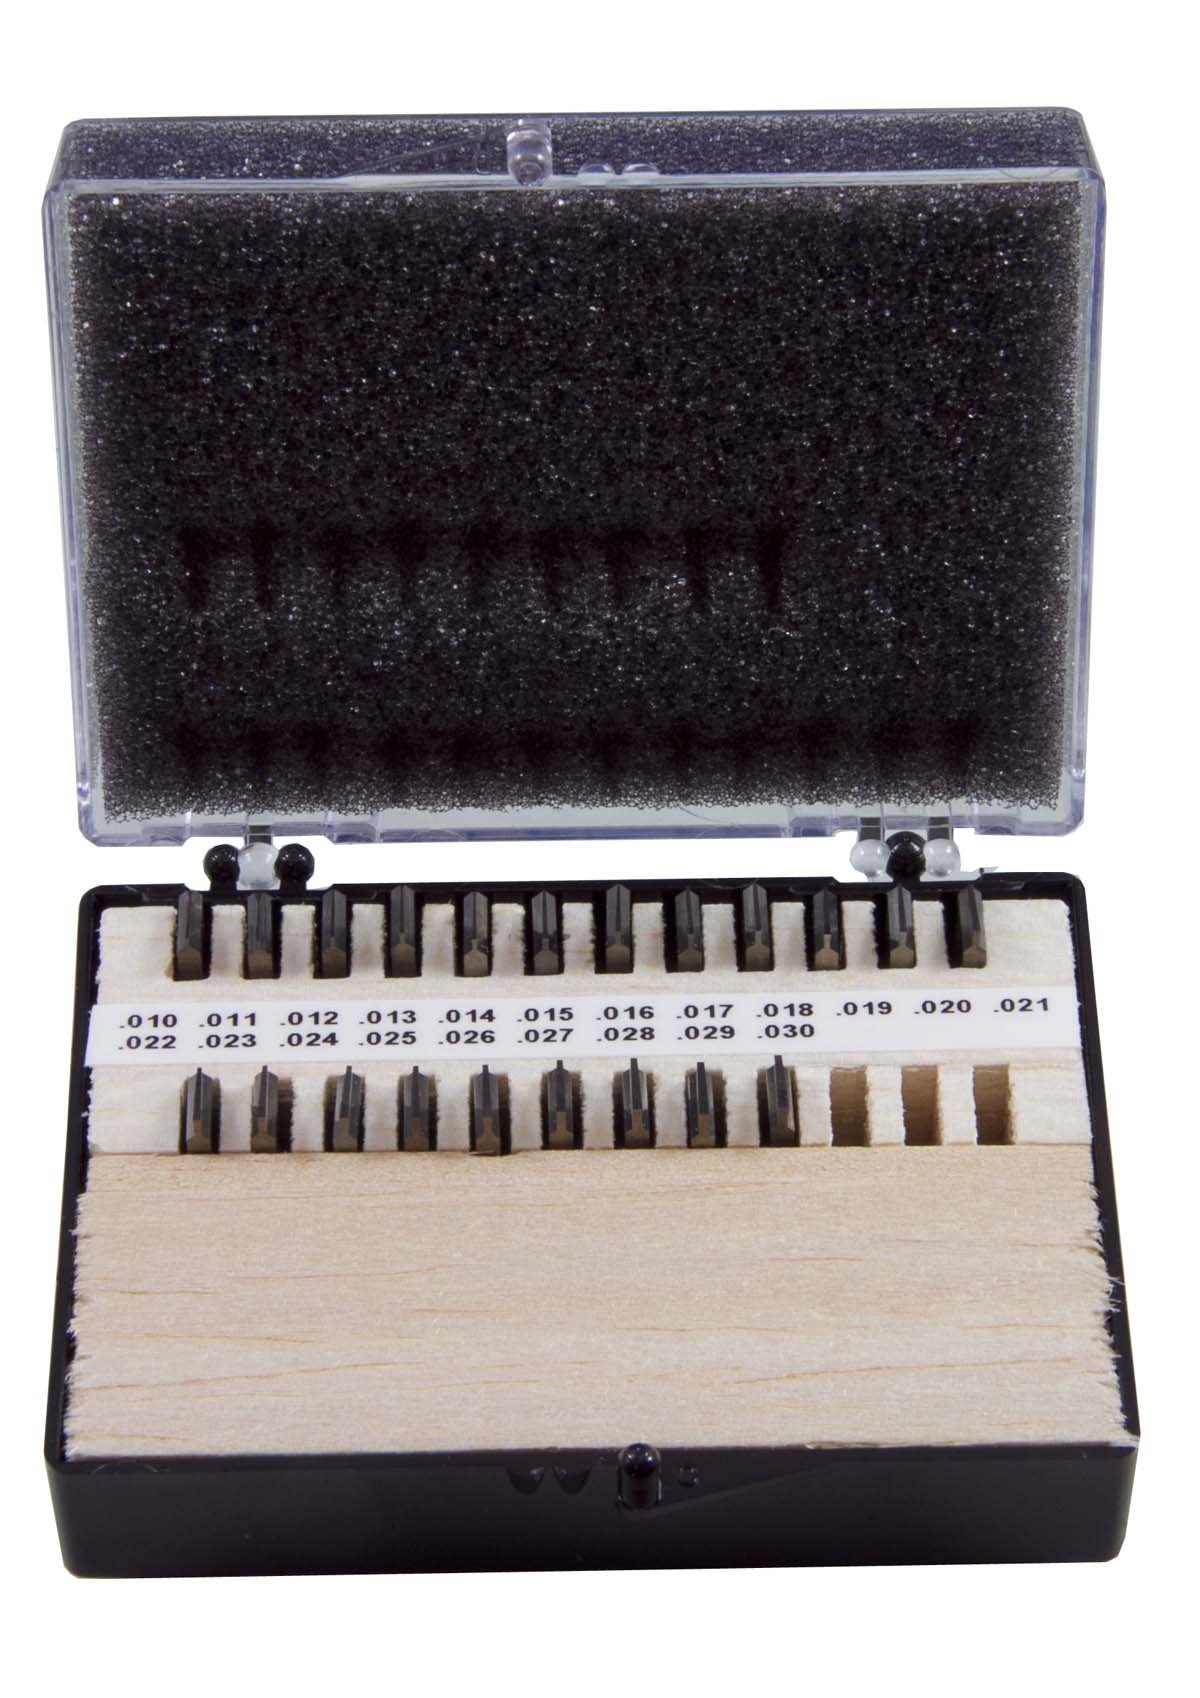 THINBIT SSET2D2, 0.010''-0.030'', Carbide, 21 Piece, 0.001'' Increment Insert Set for Steel, Cast Iron and Stainless Steel with Interrupted Cuts